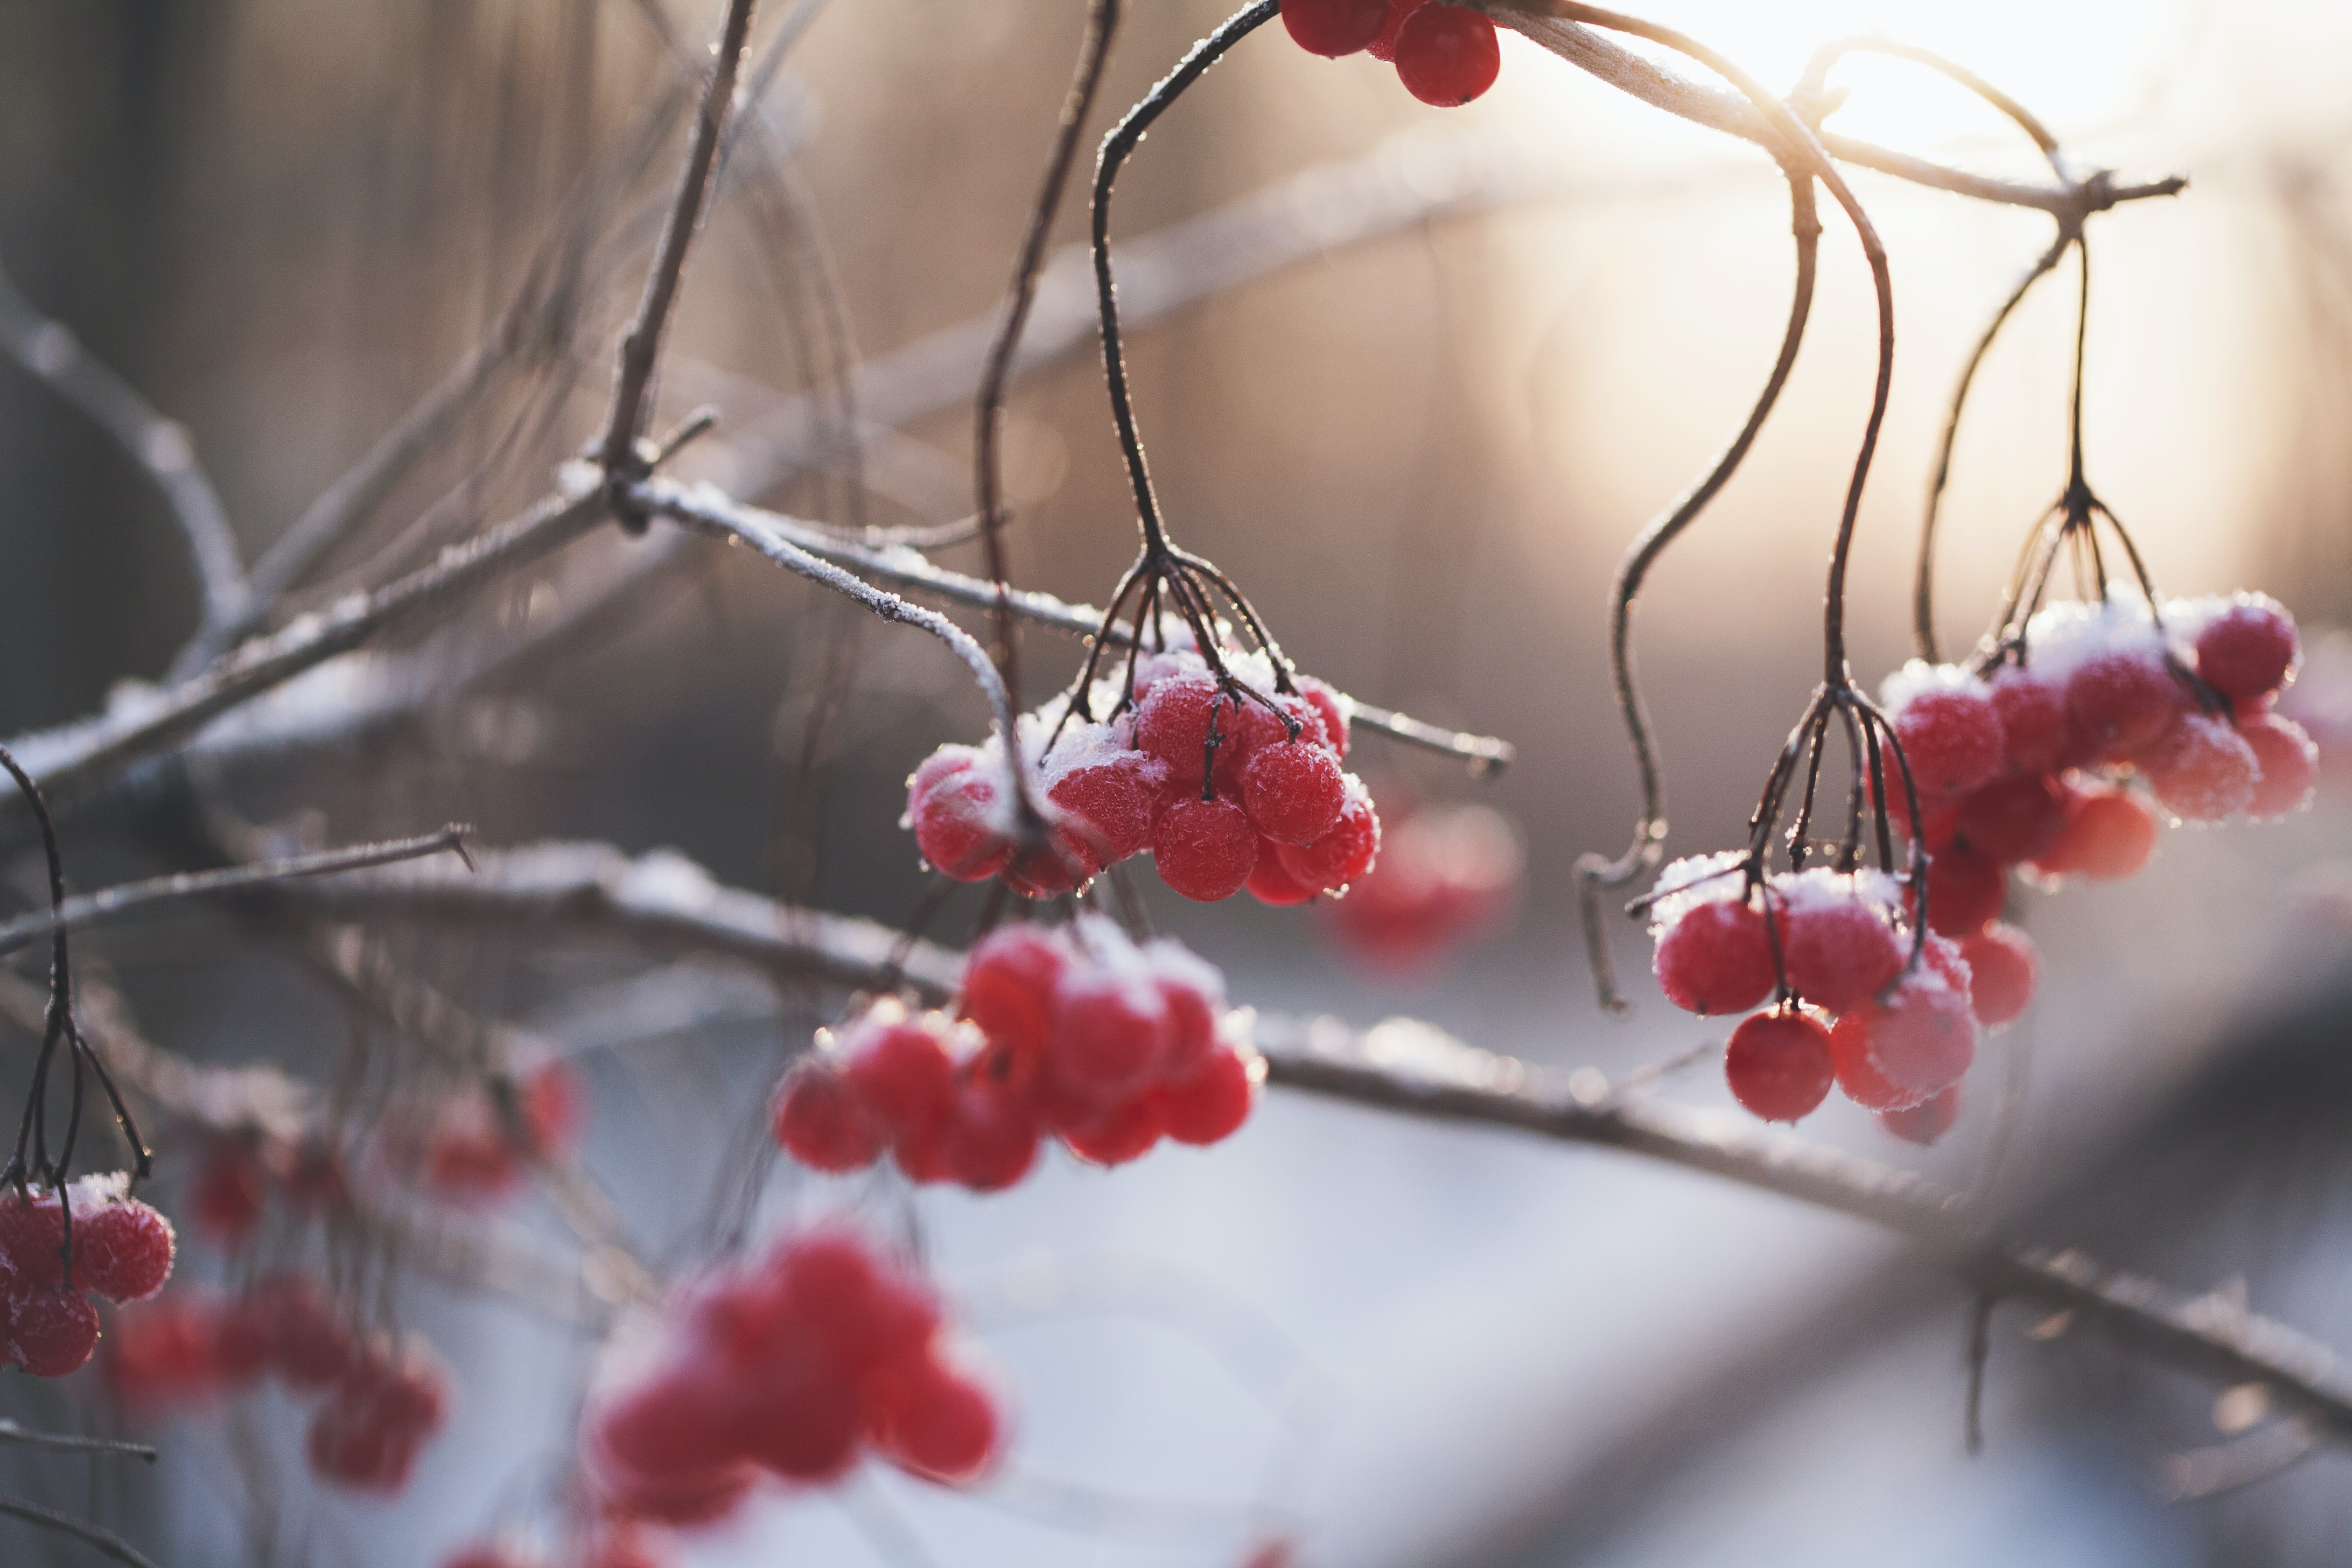 Red berries on bare tree branches that are covered in frost by the Vuoksi River